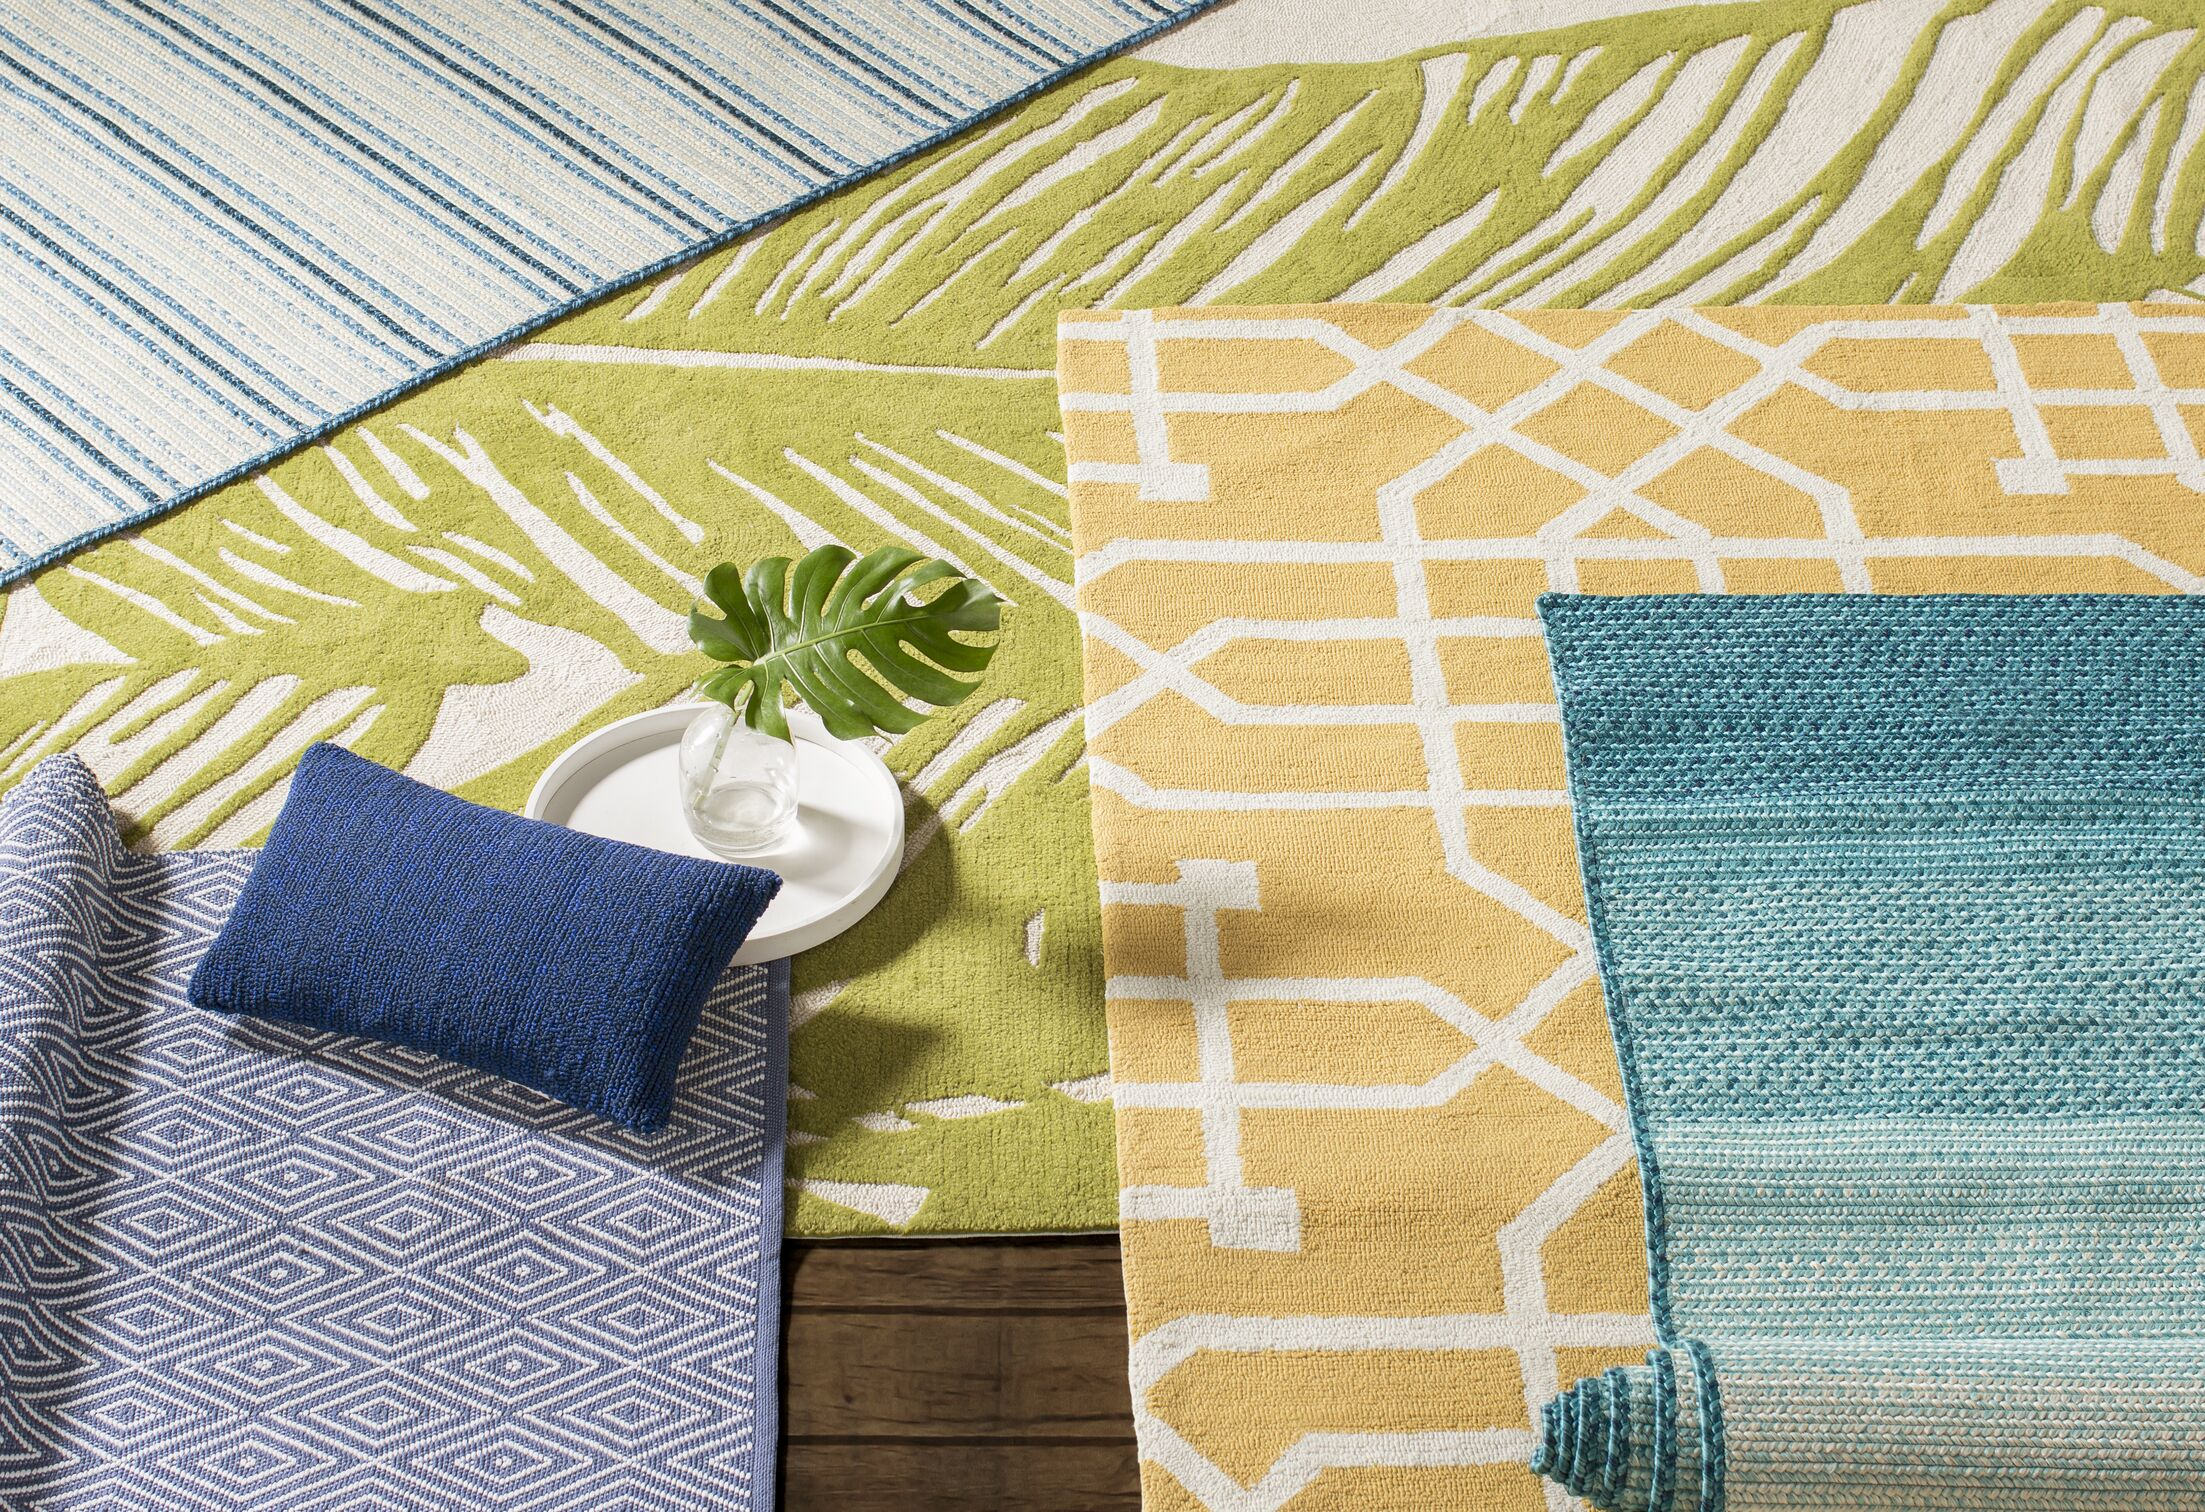 Angela Hand-Tufted Yellow Indoor/Outdoor Area Rug Size: Rectangle 9' x 12'